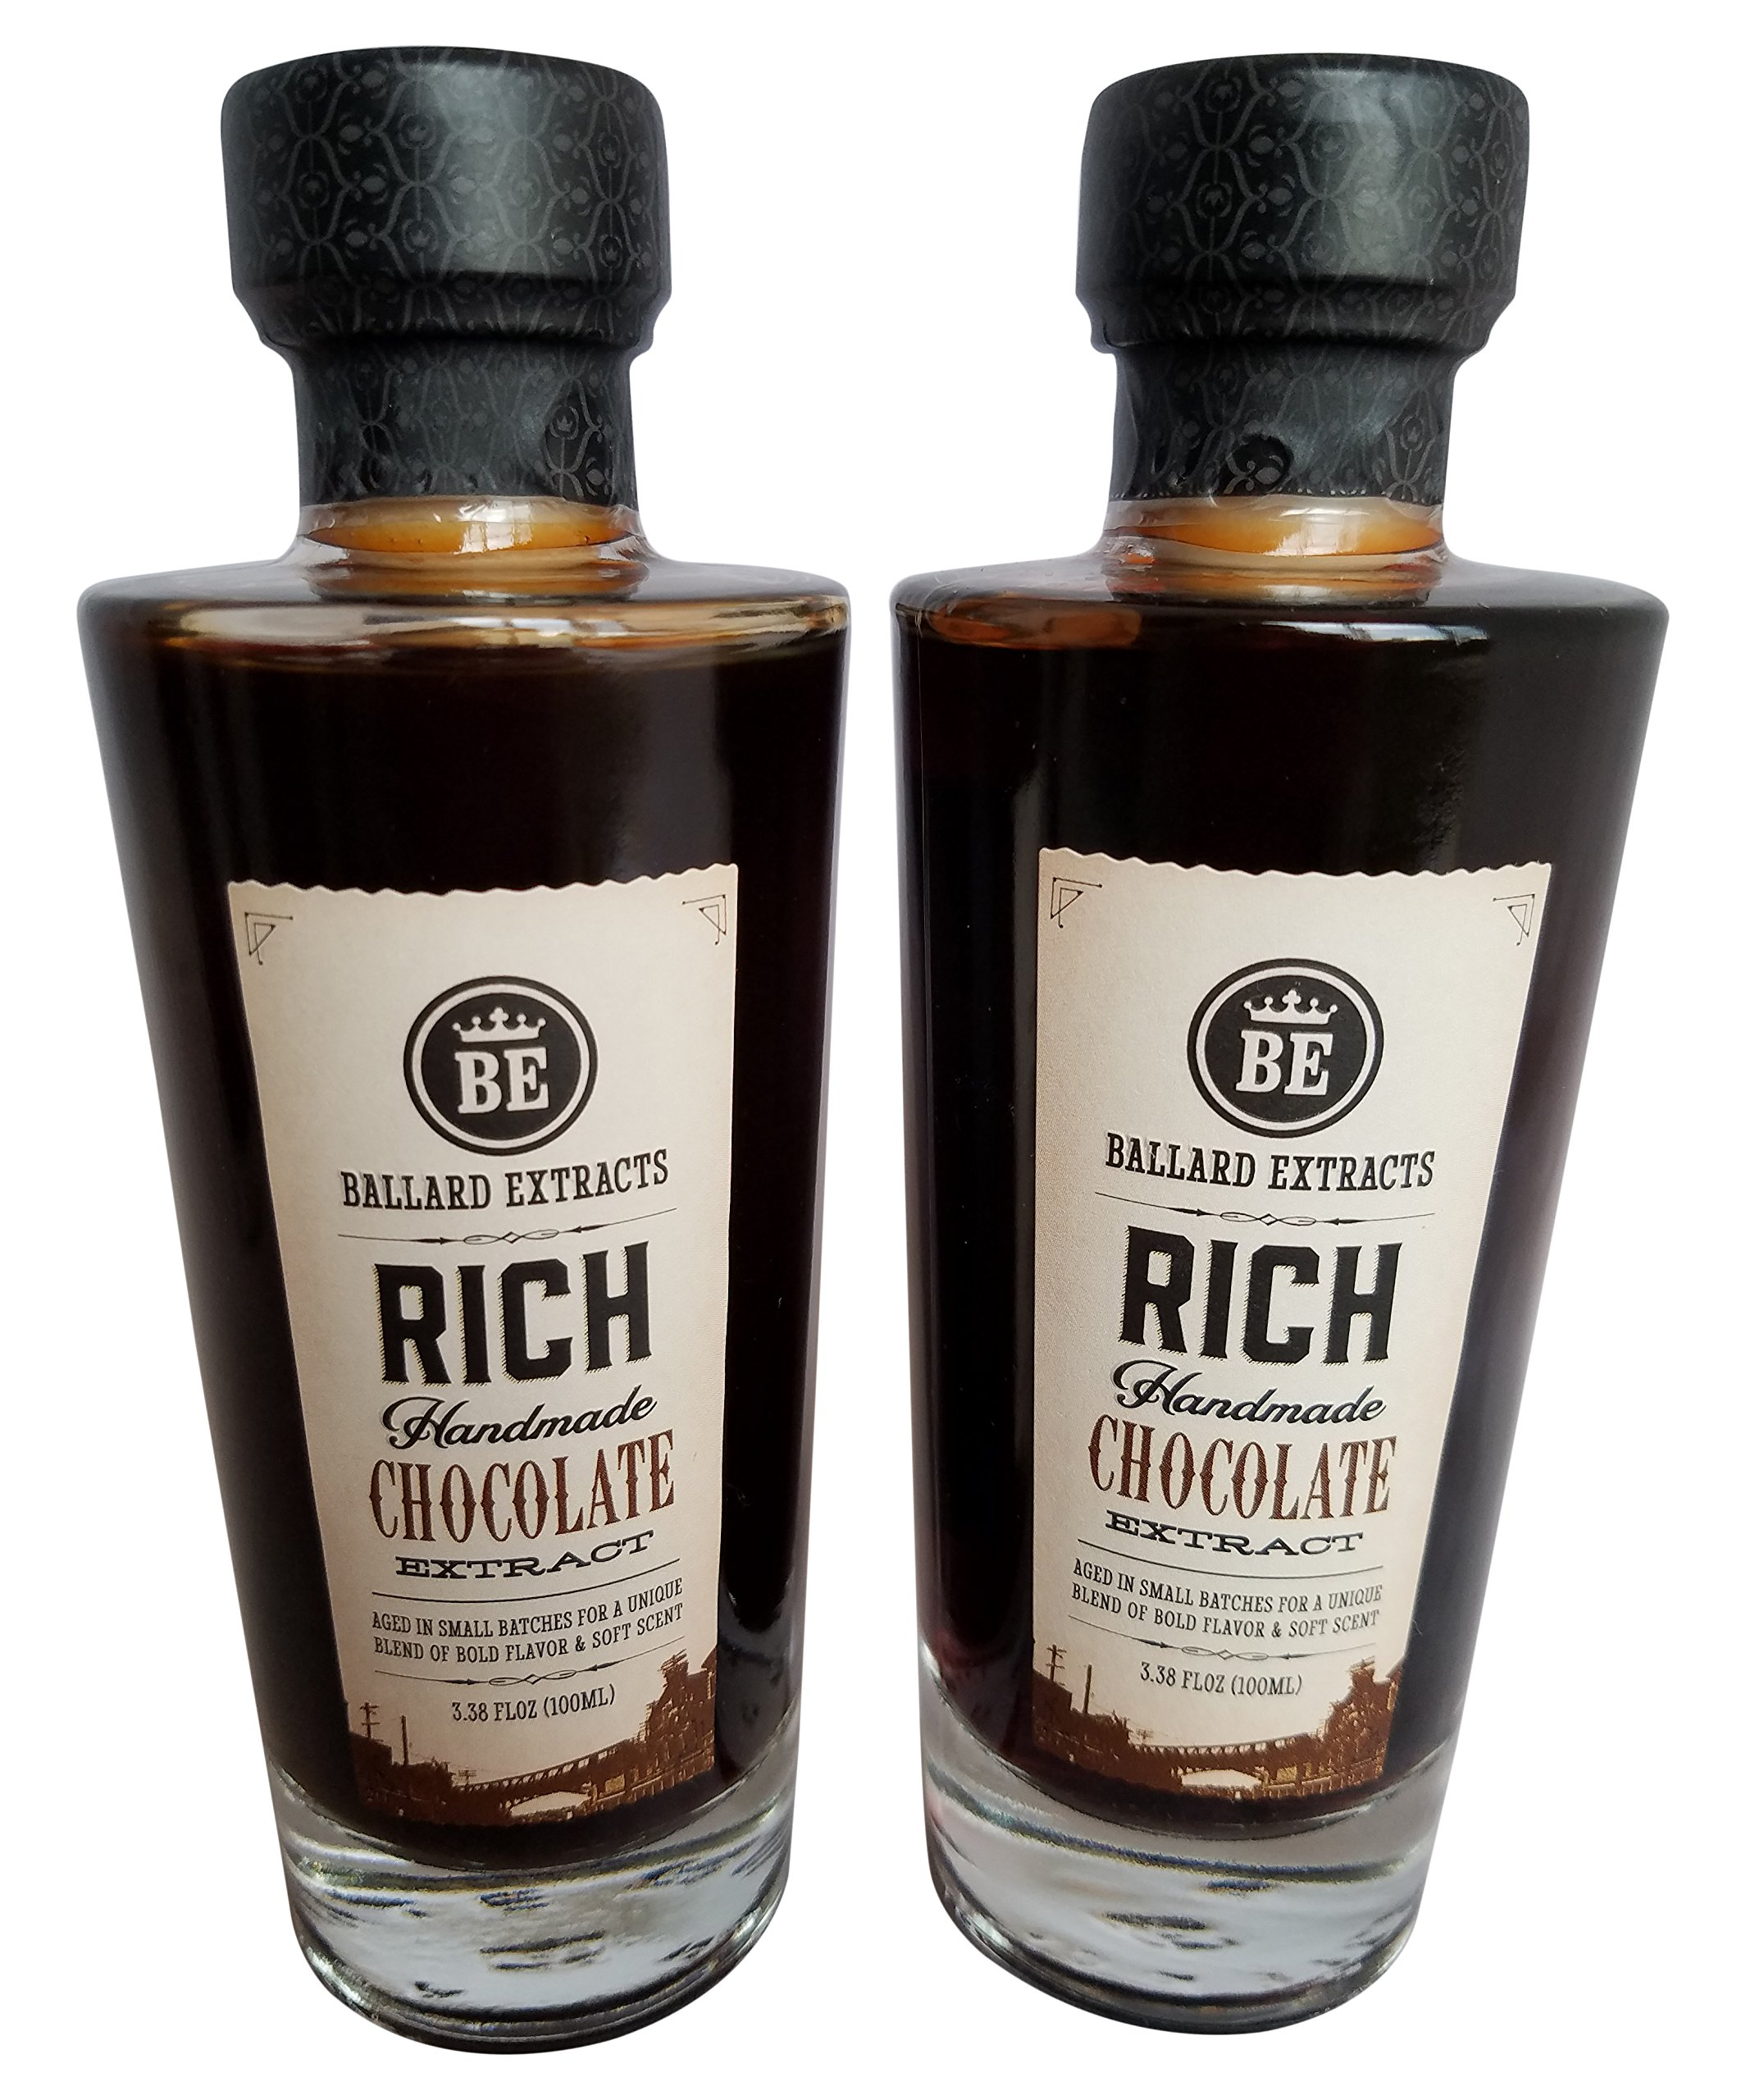 Ballard Extracts Chocolate and Chocolate Two Pack, 3.38 Ounce